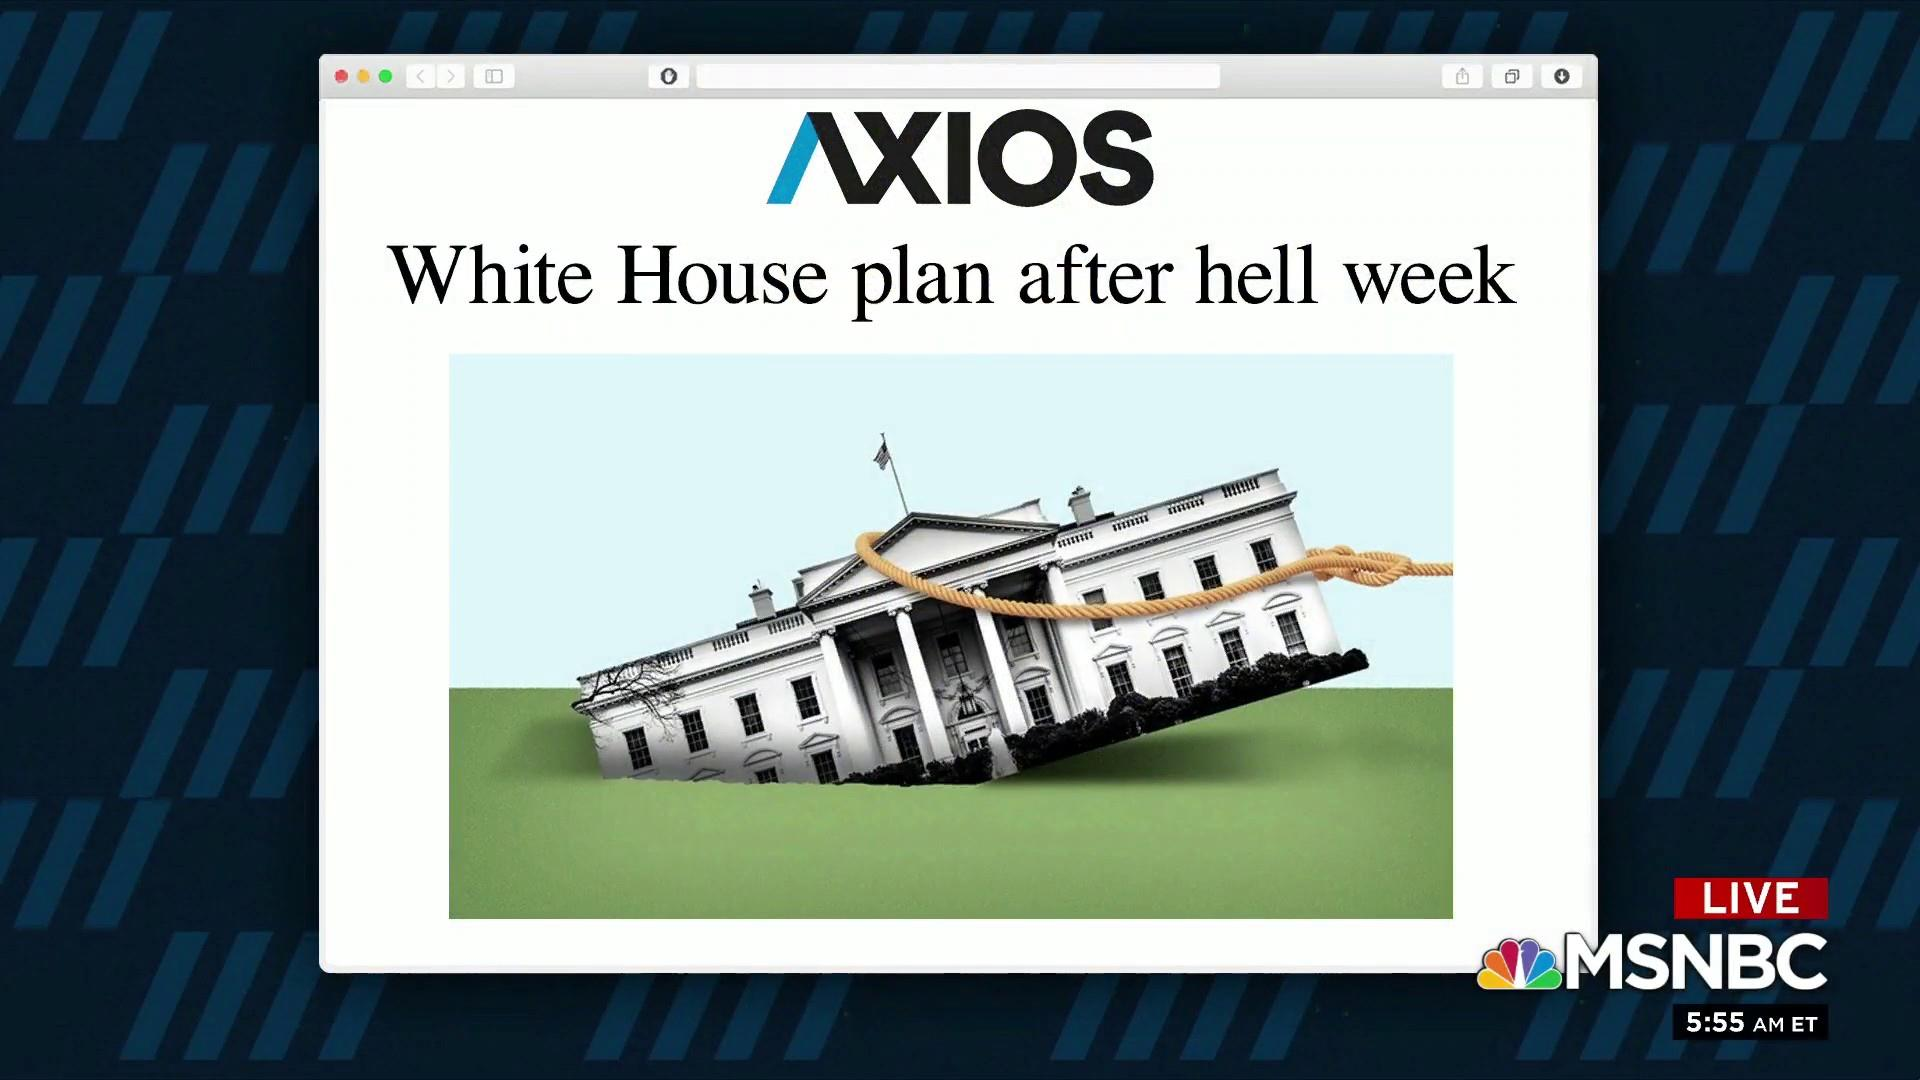 1 Big Thing: White House plan after hell week